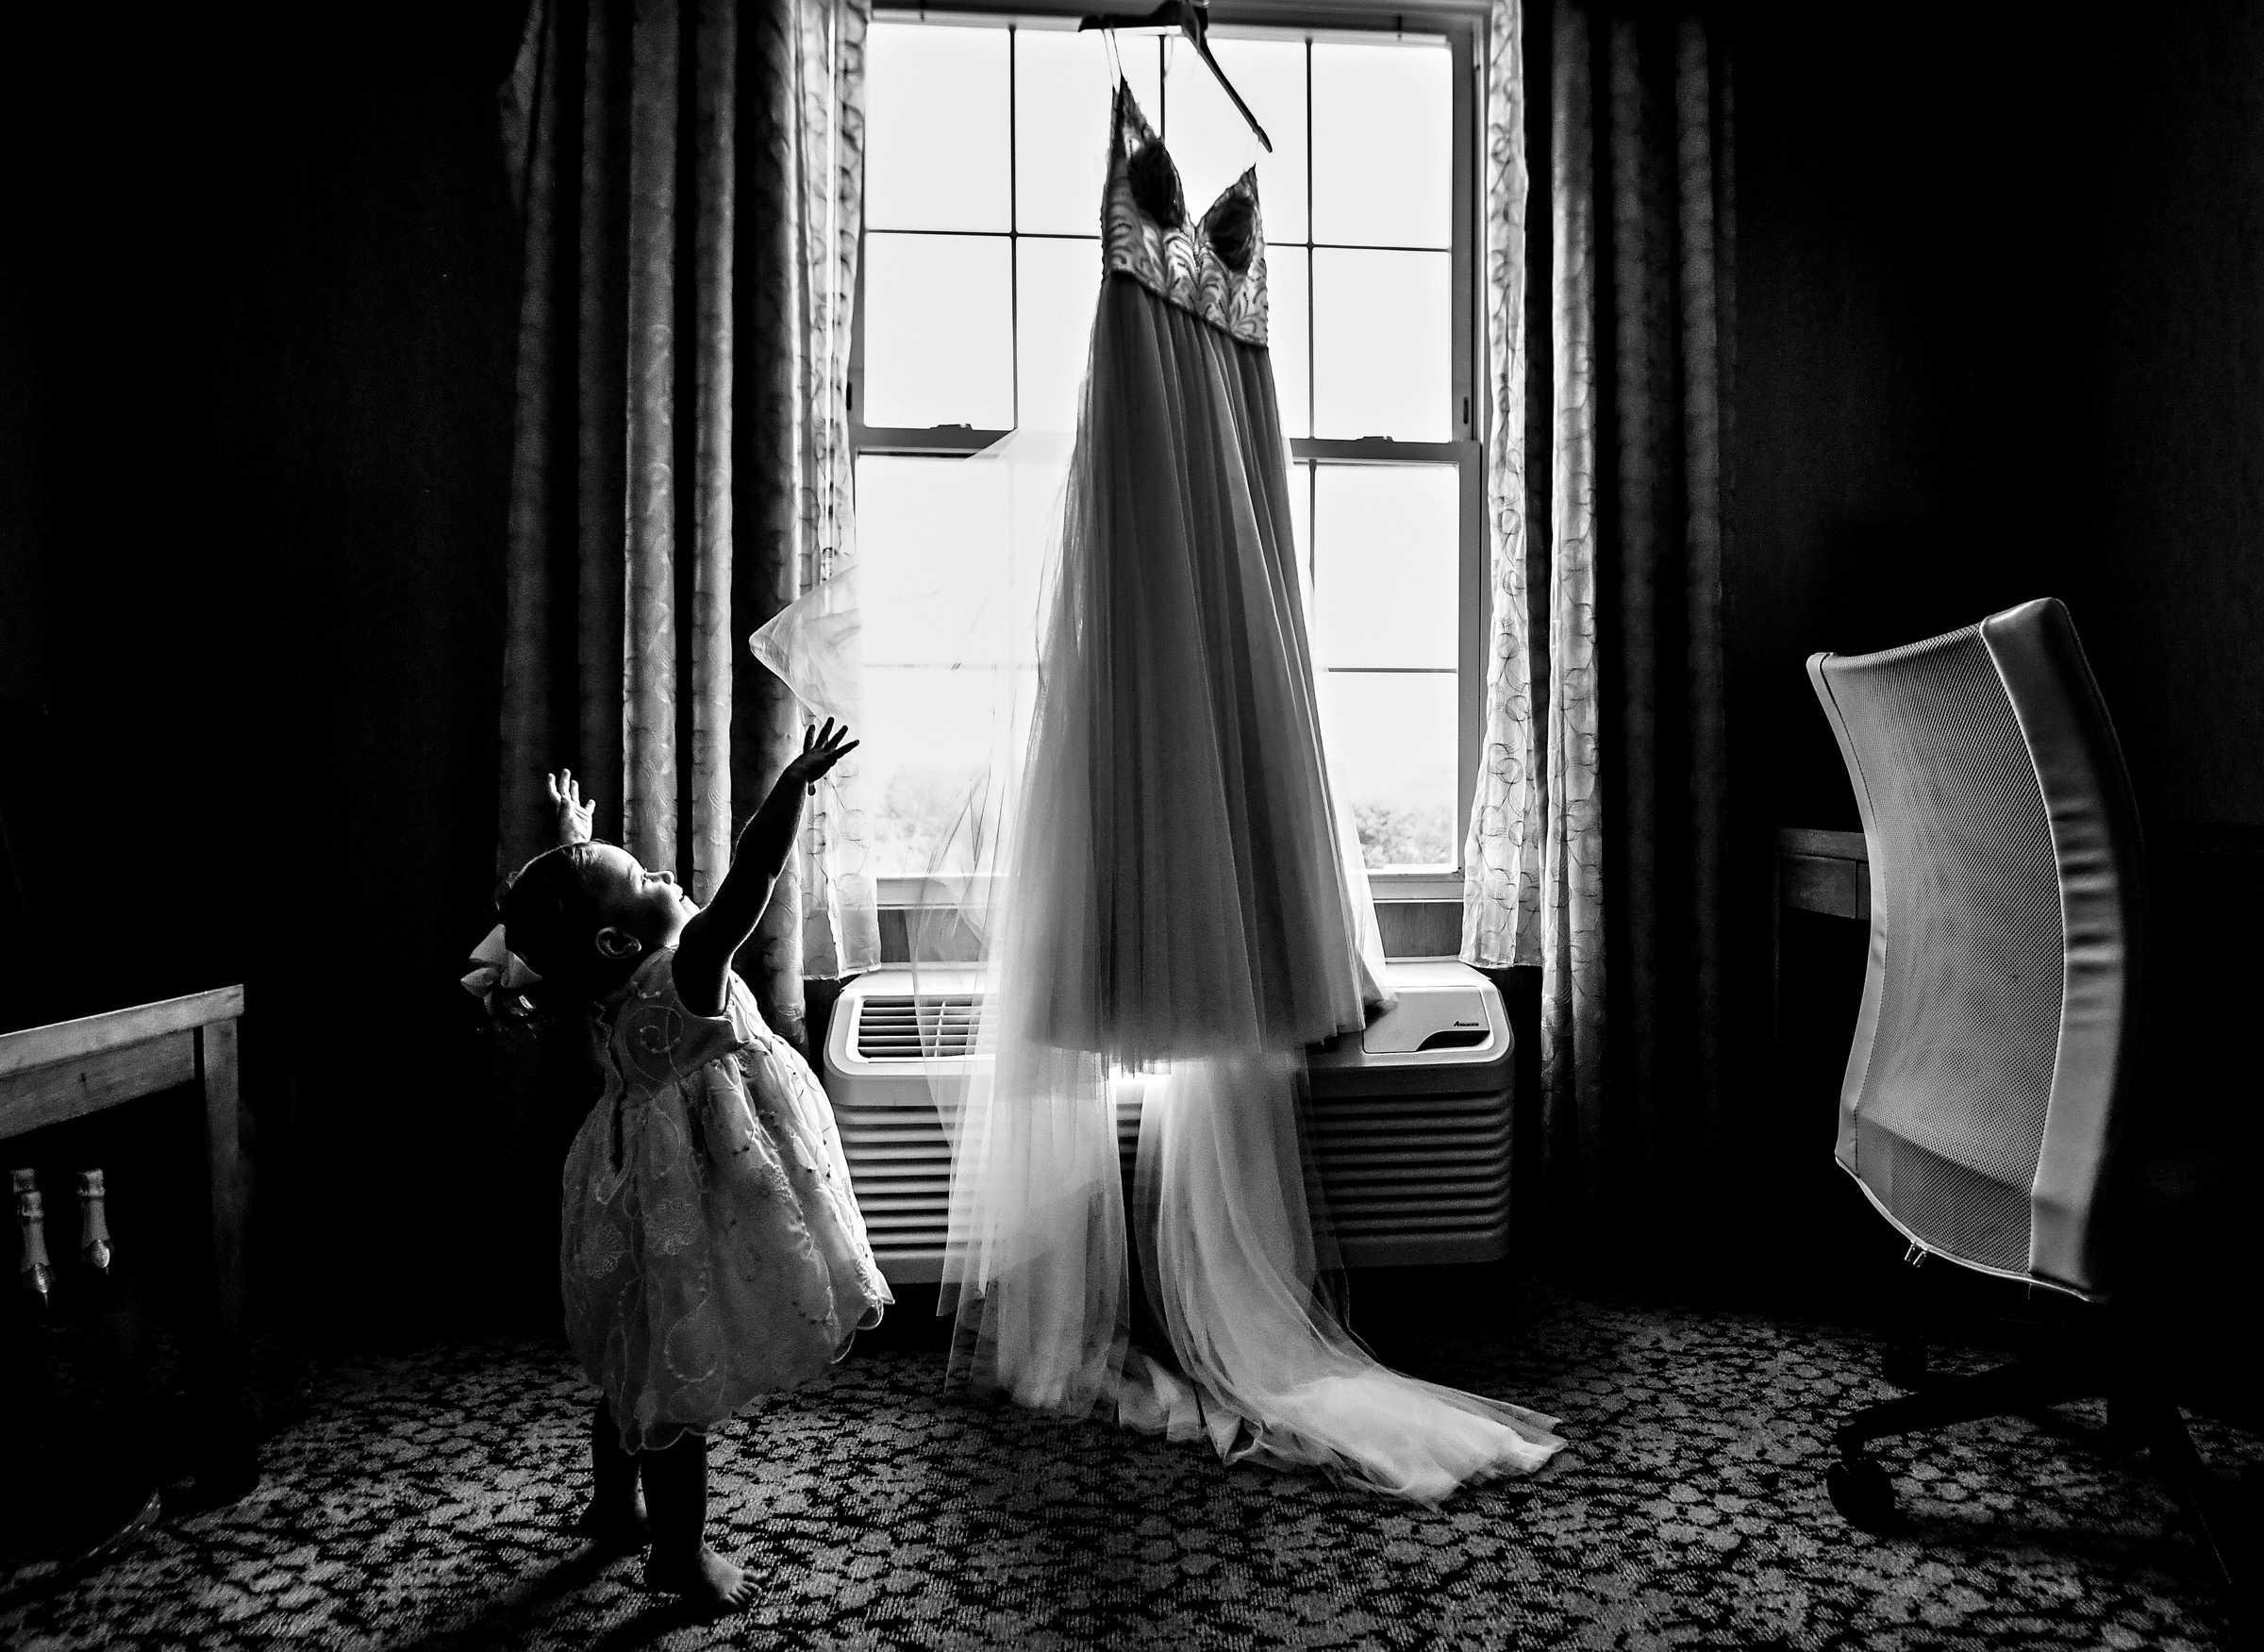 Little girl reaching up toward hanging gown - photo by Jeff Tisman Photography